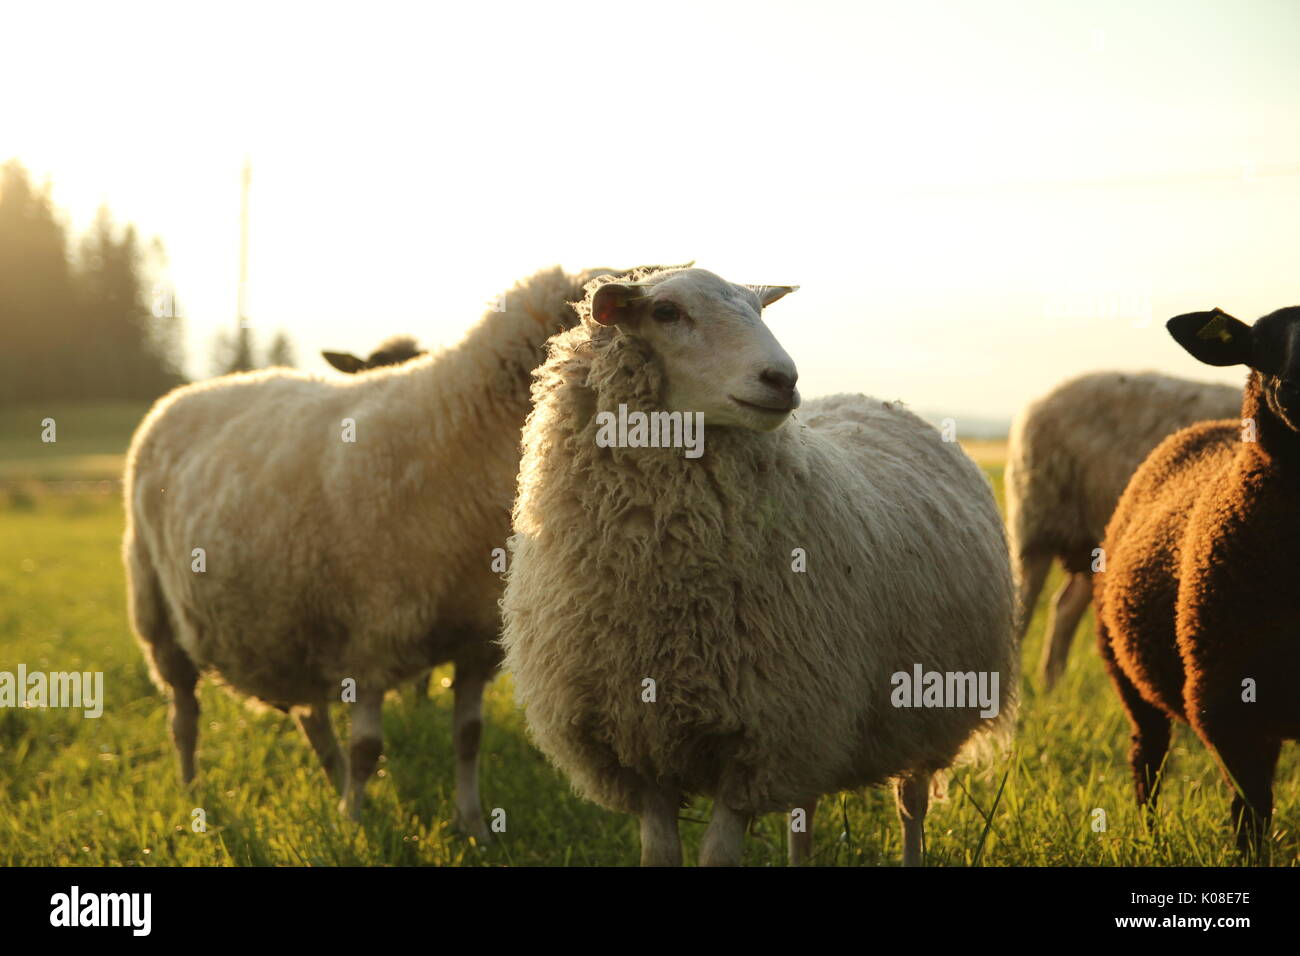 Sheep standing in a norwegian meadow, Inderøy (Trøndelag, Norway) - Stock Image